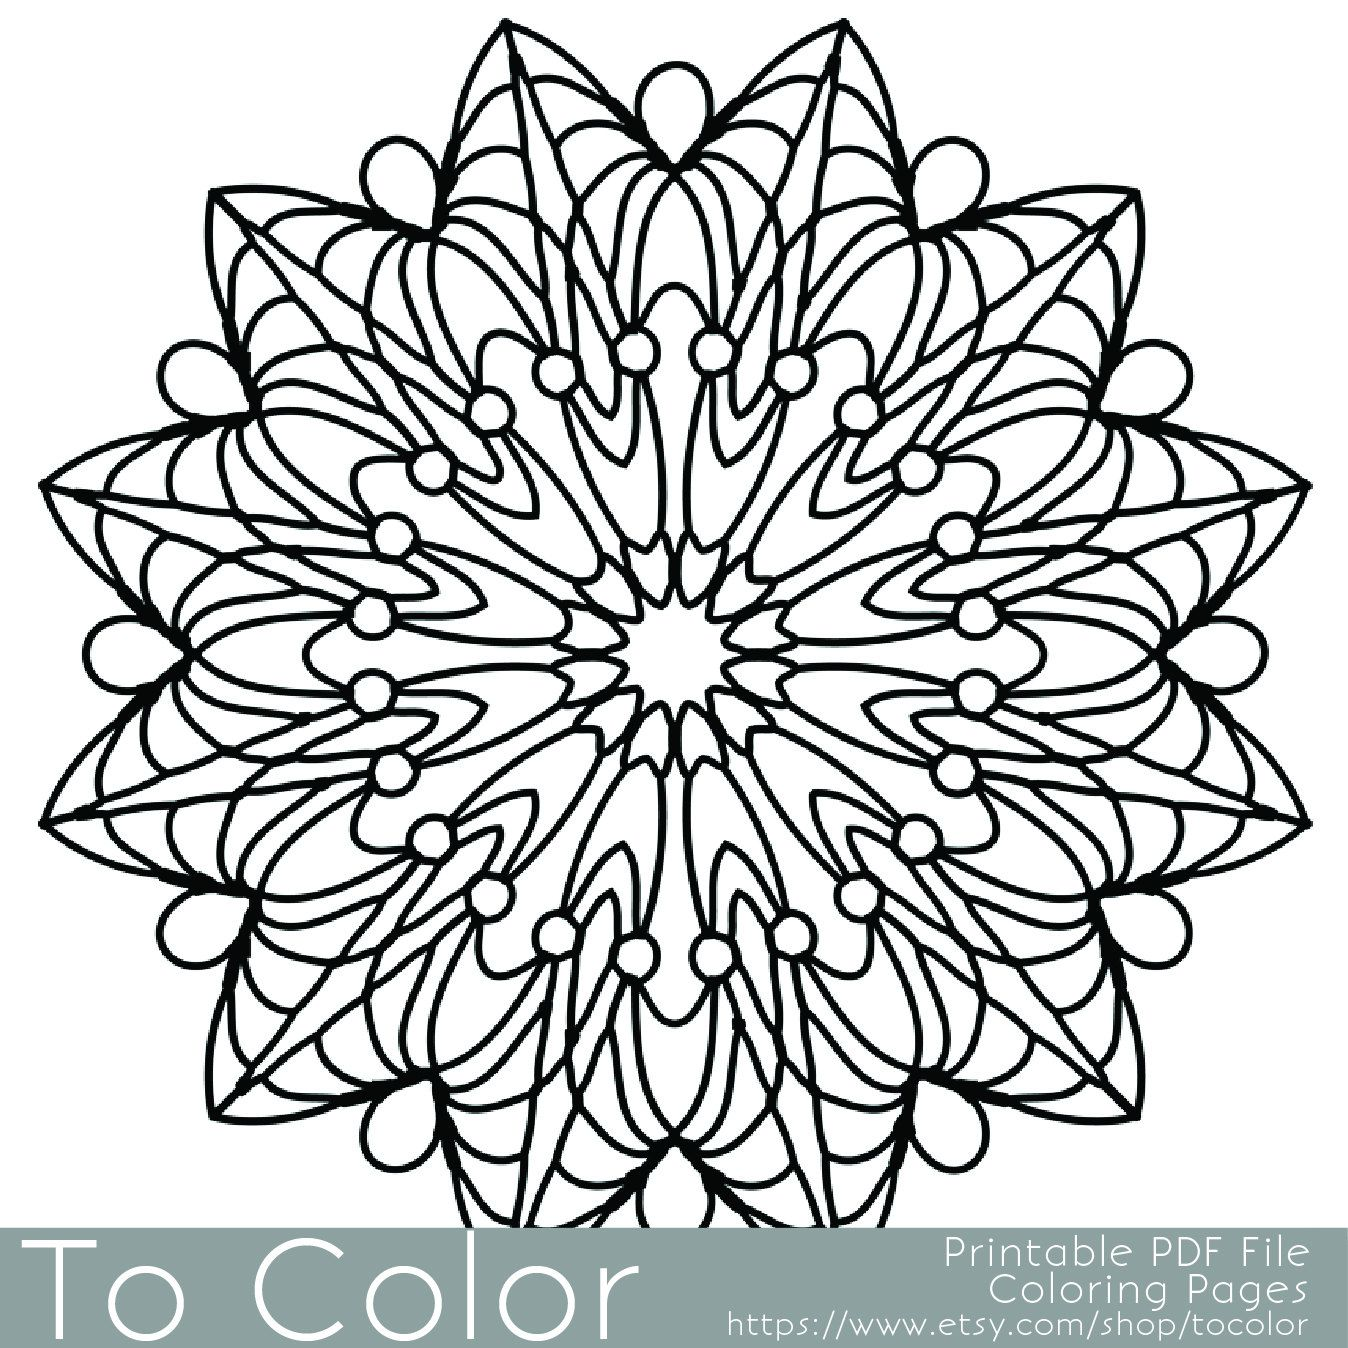 simple printable coloring pages for adults gel pens mandala pattern pdf jpg instant download coloring book coloring sheet grown up